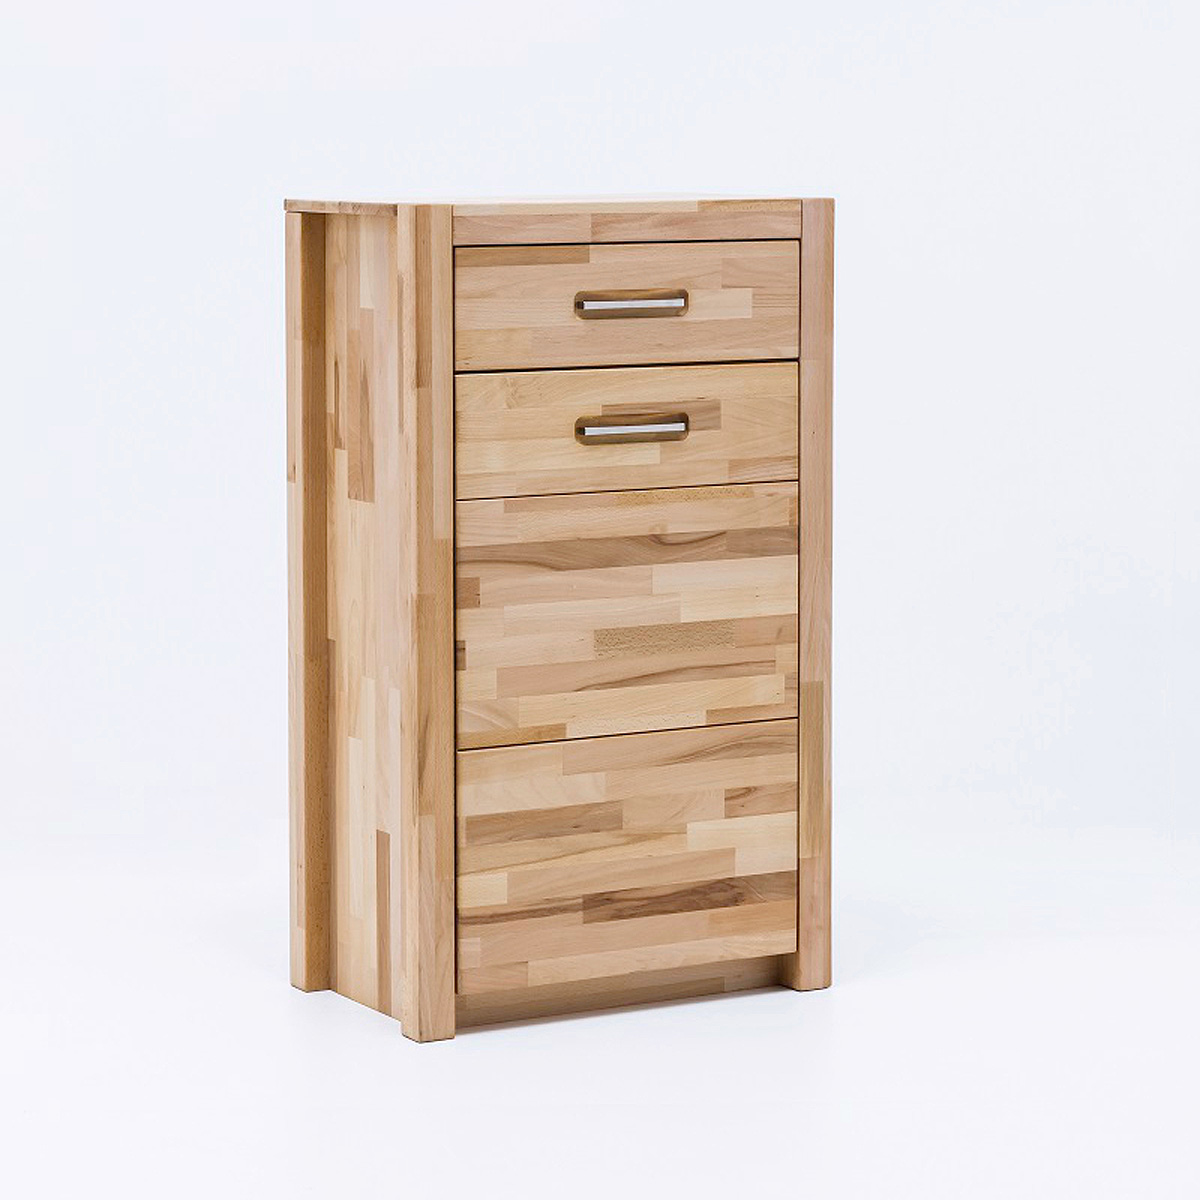 kommode fenja schuhschrank garderobe in kernbuche keilverzinkt massiv ge lt ebay. Black Bedroom Furniture Sets. Home Design Ideas